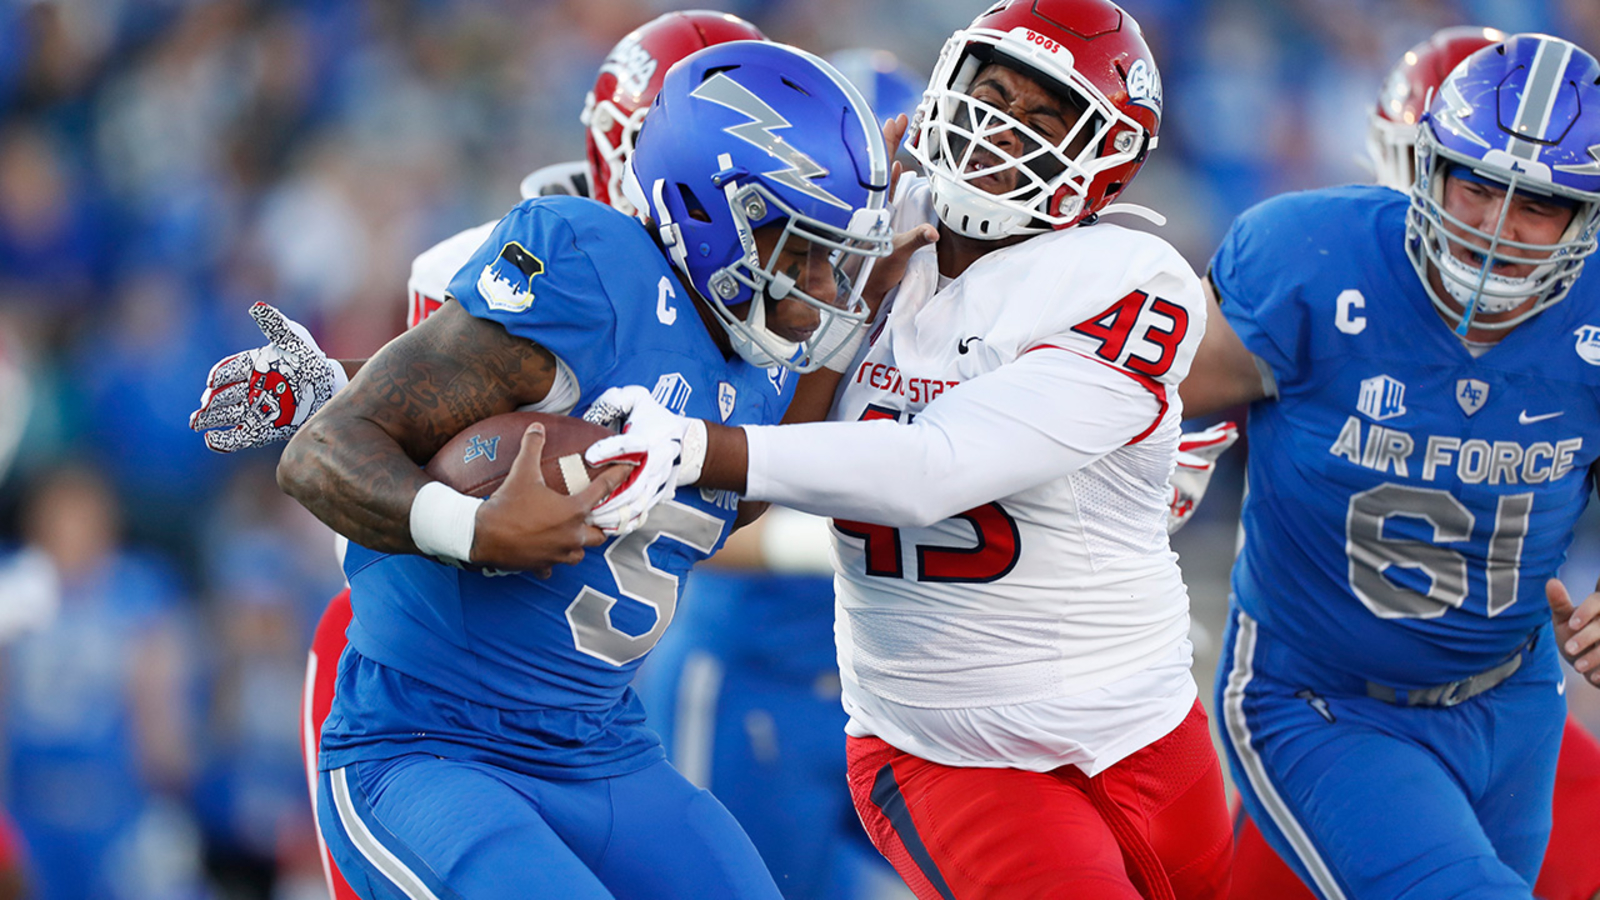 Fresno State loses conference opener to Air Force, 43-24